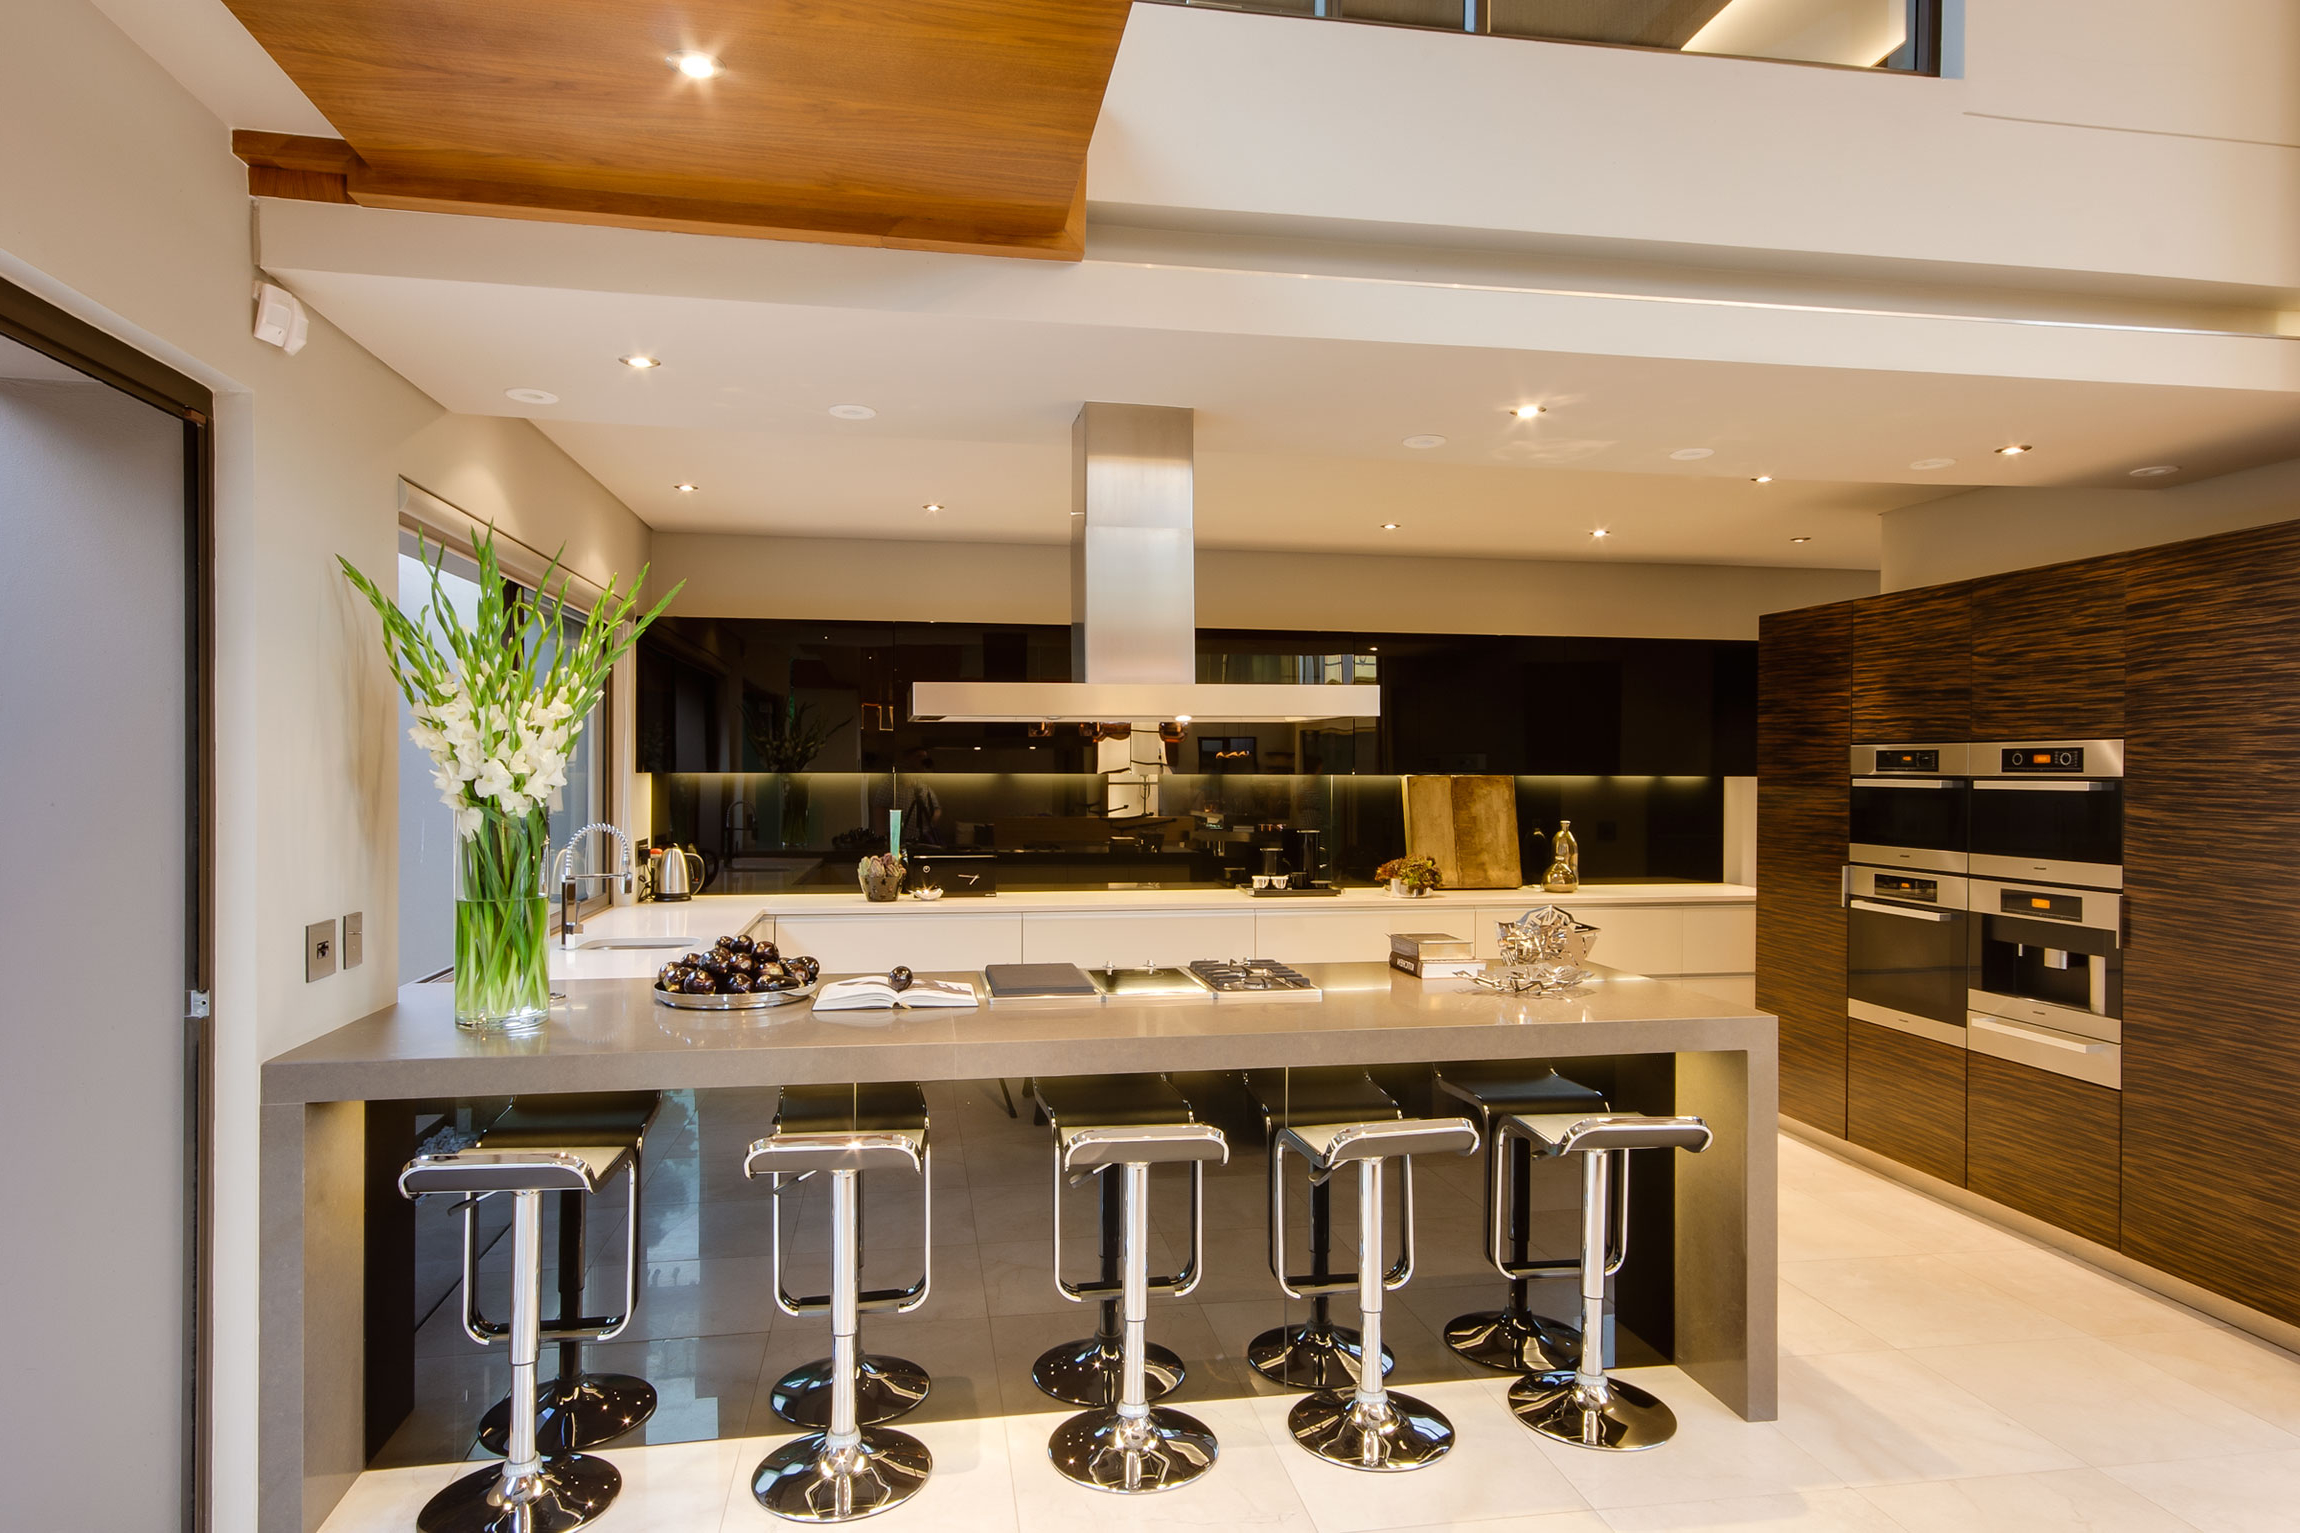 Modern Restaurant Kitchen Design Contemporary Kitchen Bar Design 947 Kitchen Ideas